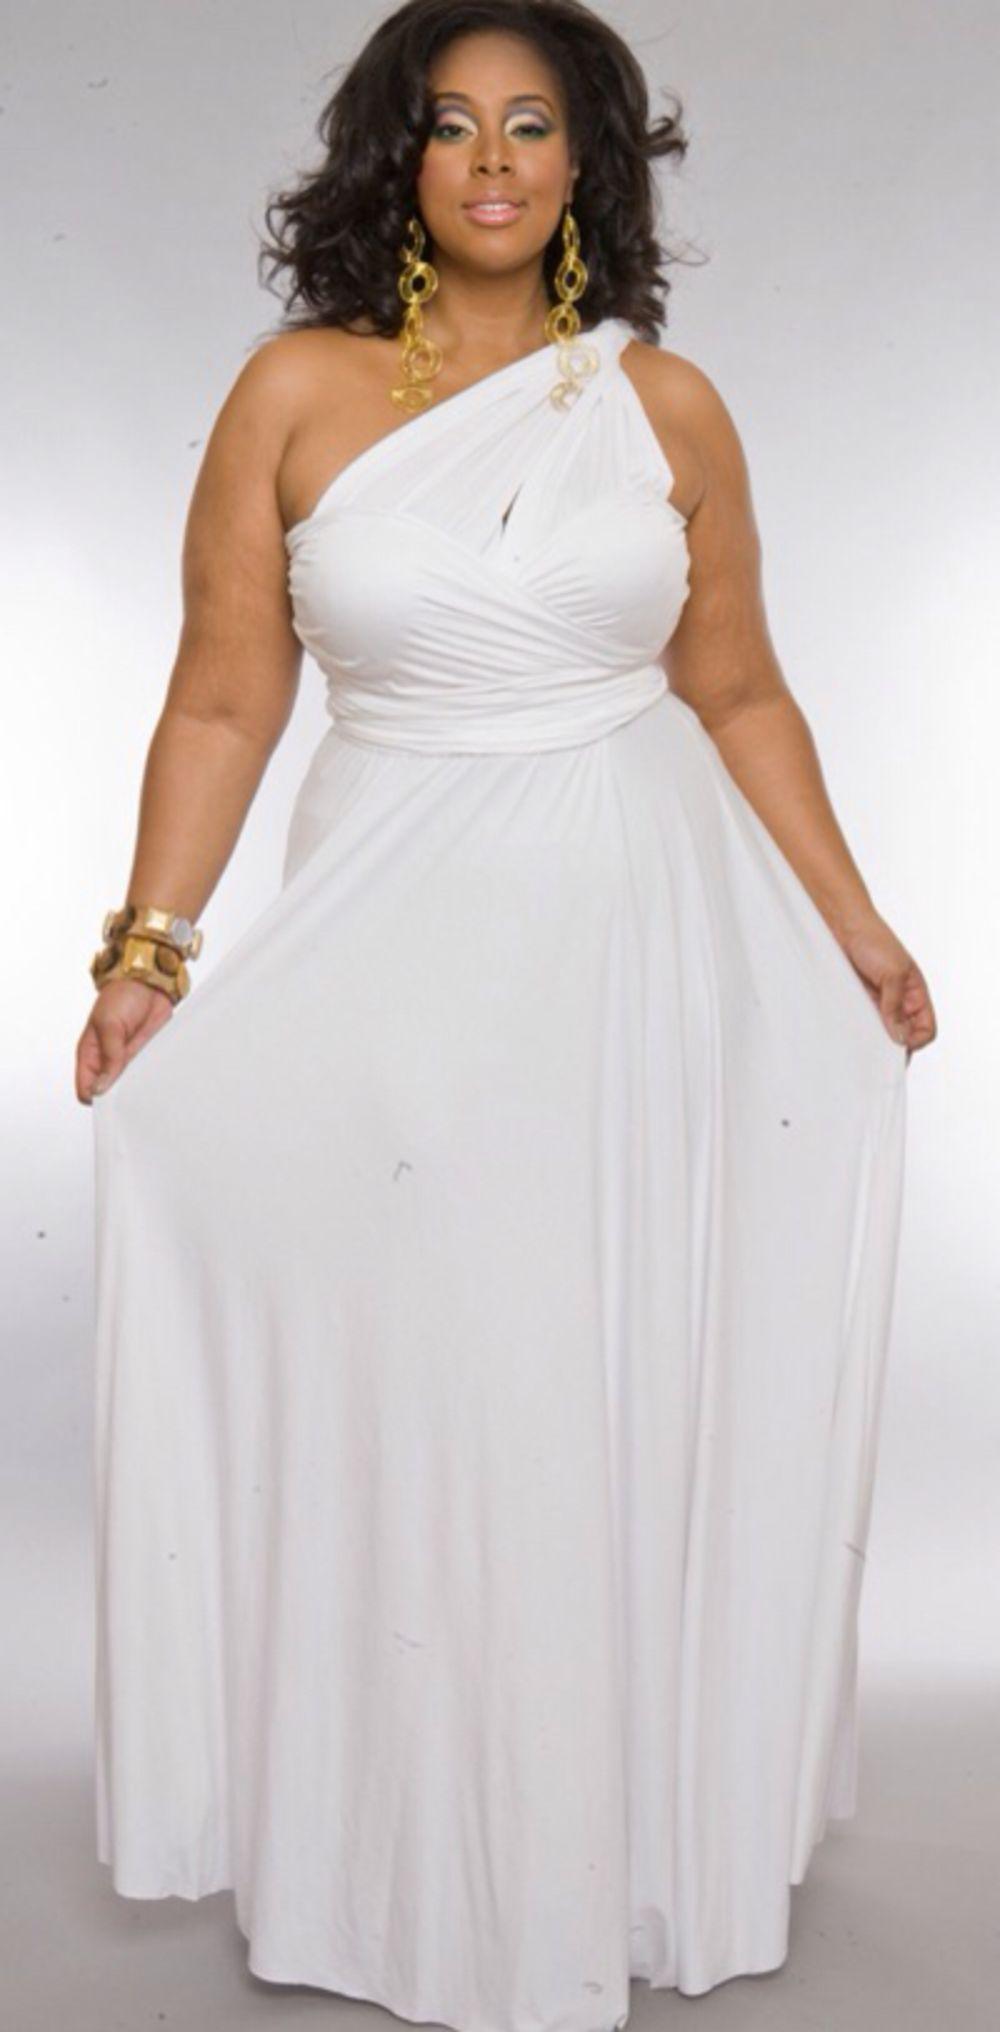 35 stunning plus size outfits ideas | clothing, size clothing and